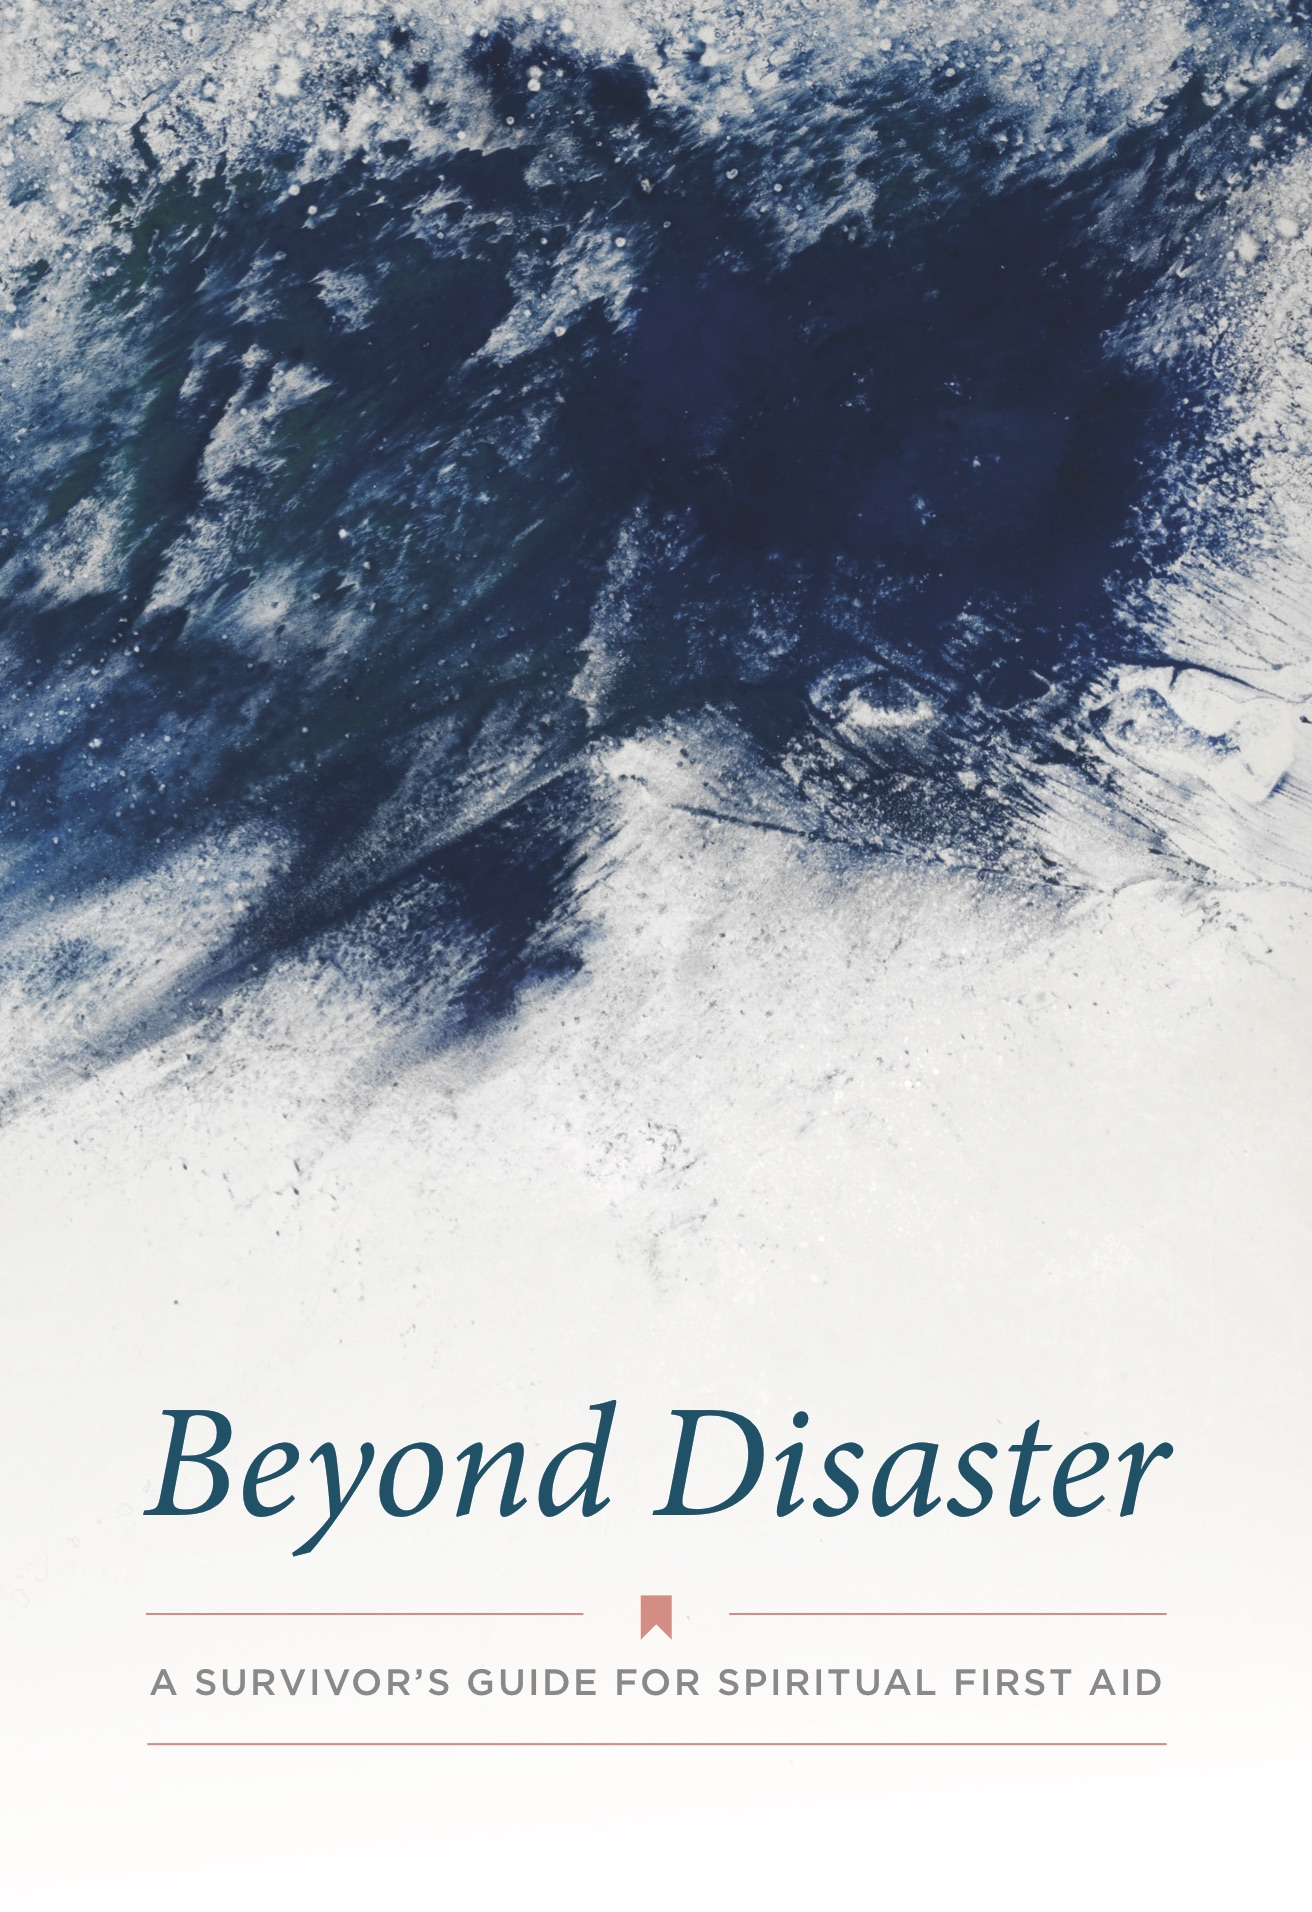 Beyond Disaster Booklet, cover image, English